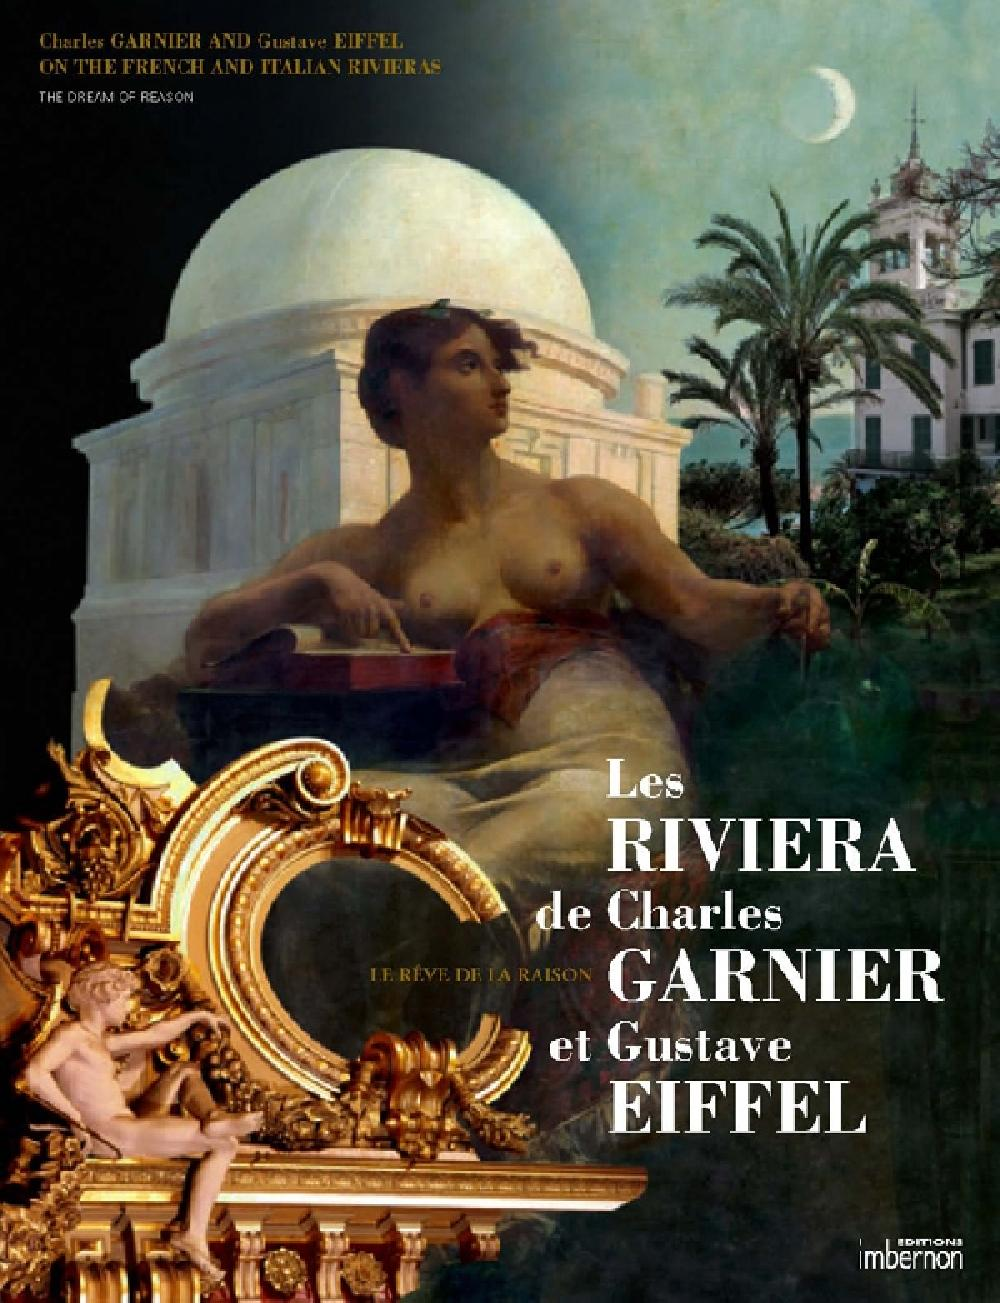 Charles Garnier and Gustave Eiffel on French and Italian Rivieras: The Dream of Reason